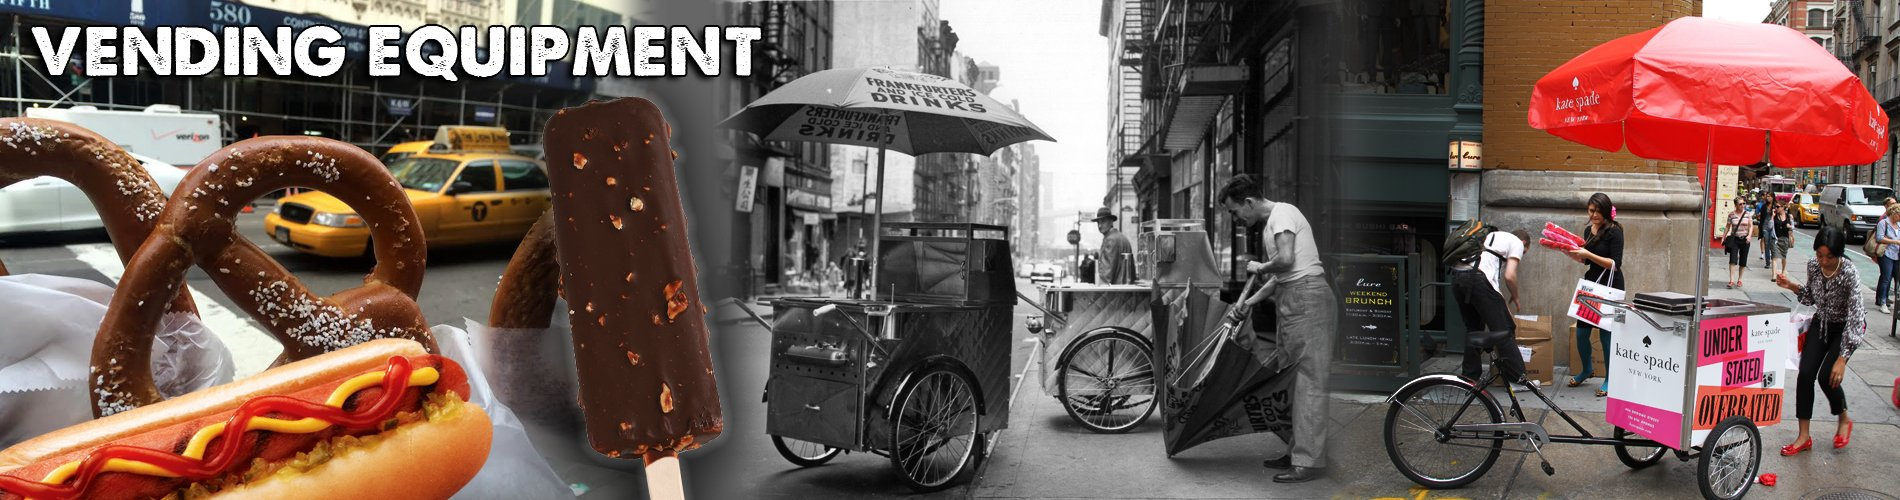 Vending hot dog ice cream popcorn carts from worksman cycles